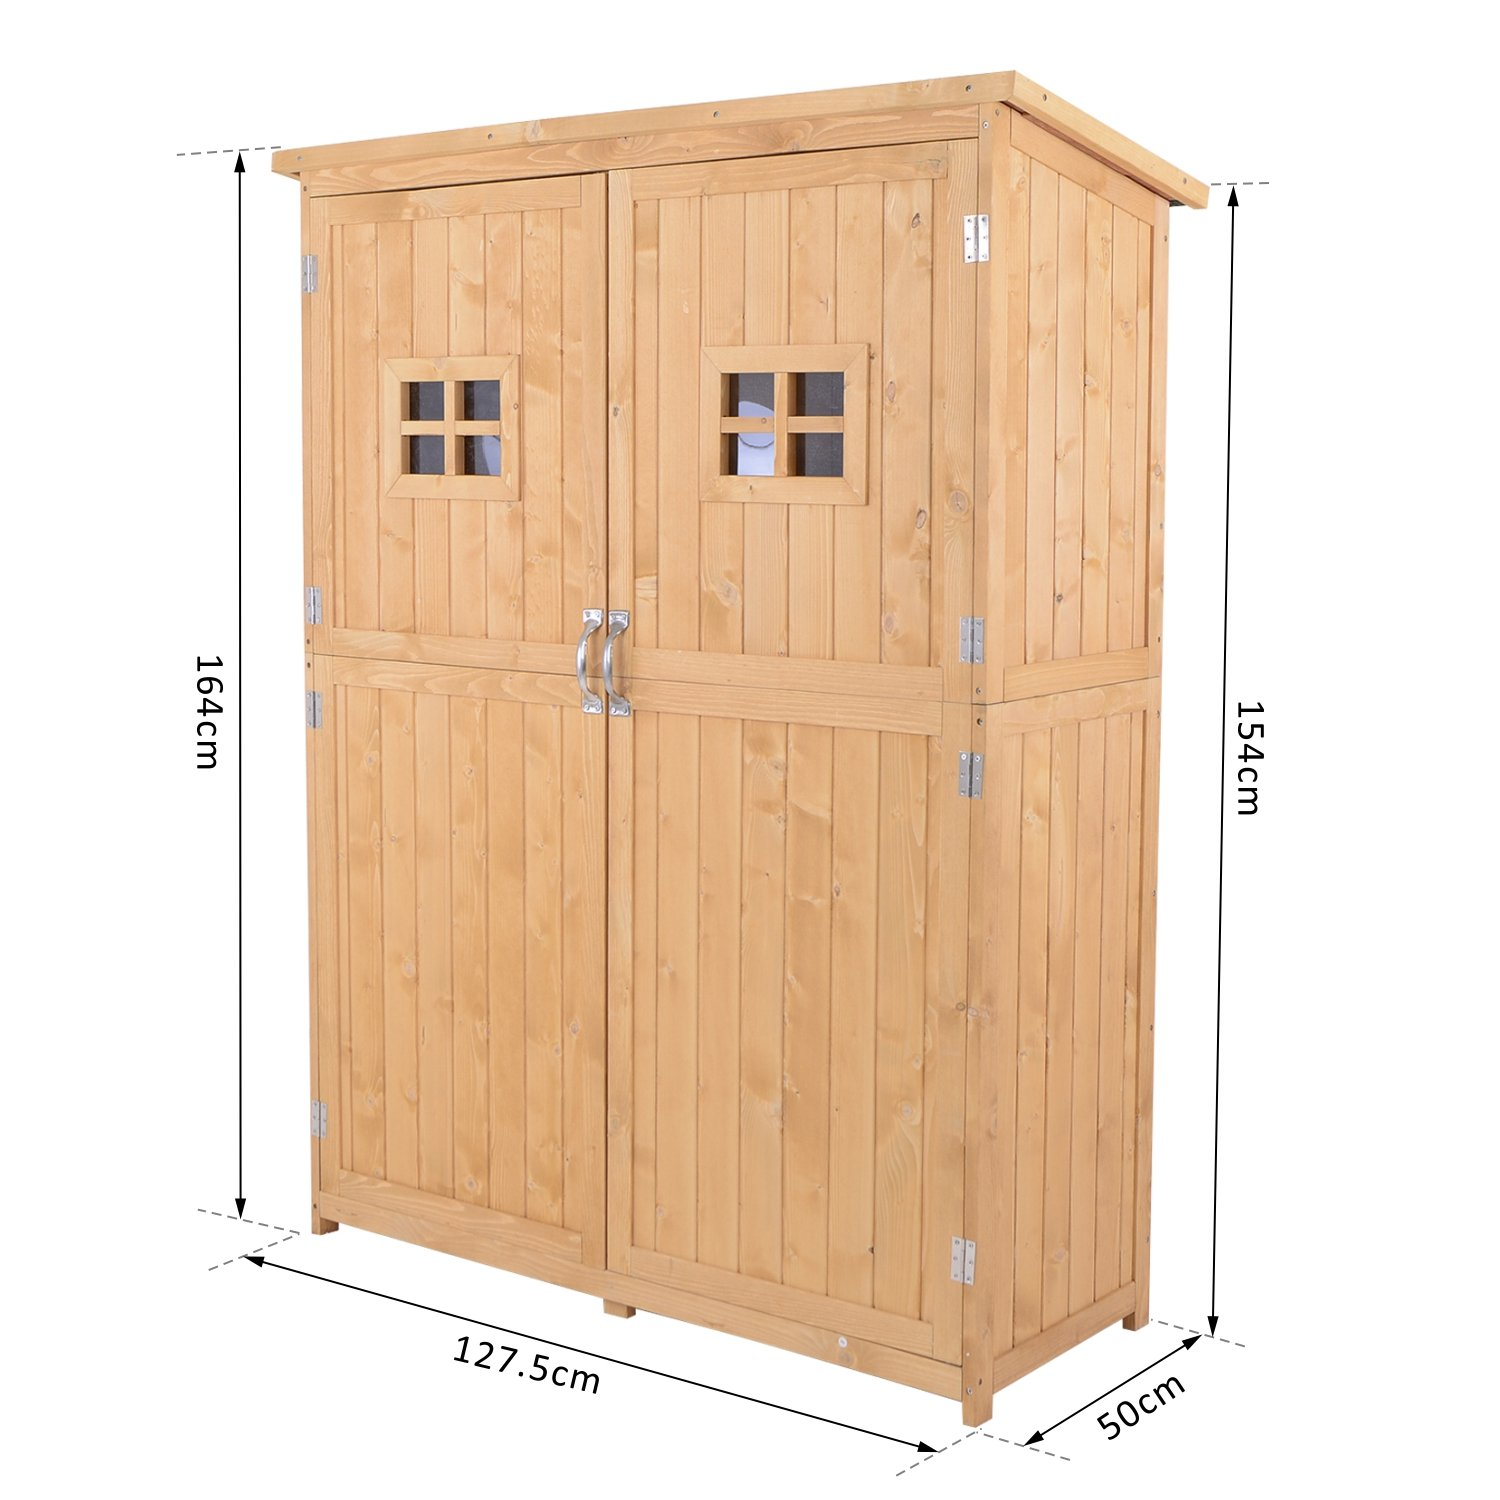 Outsunny wooden garden shed tool double door natural wood for Name something you keep in a garden shed